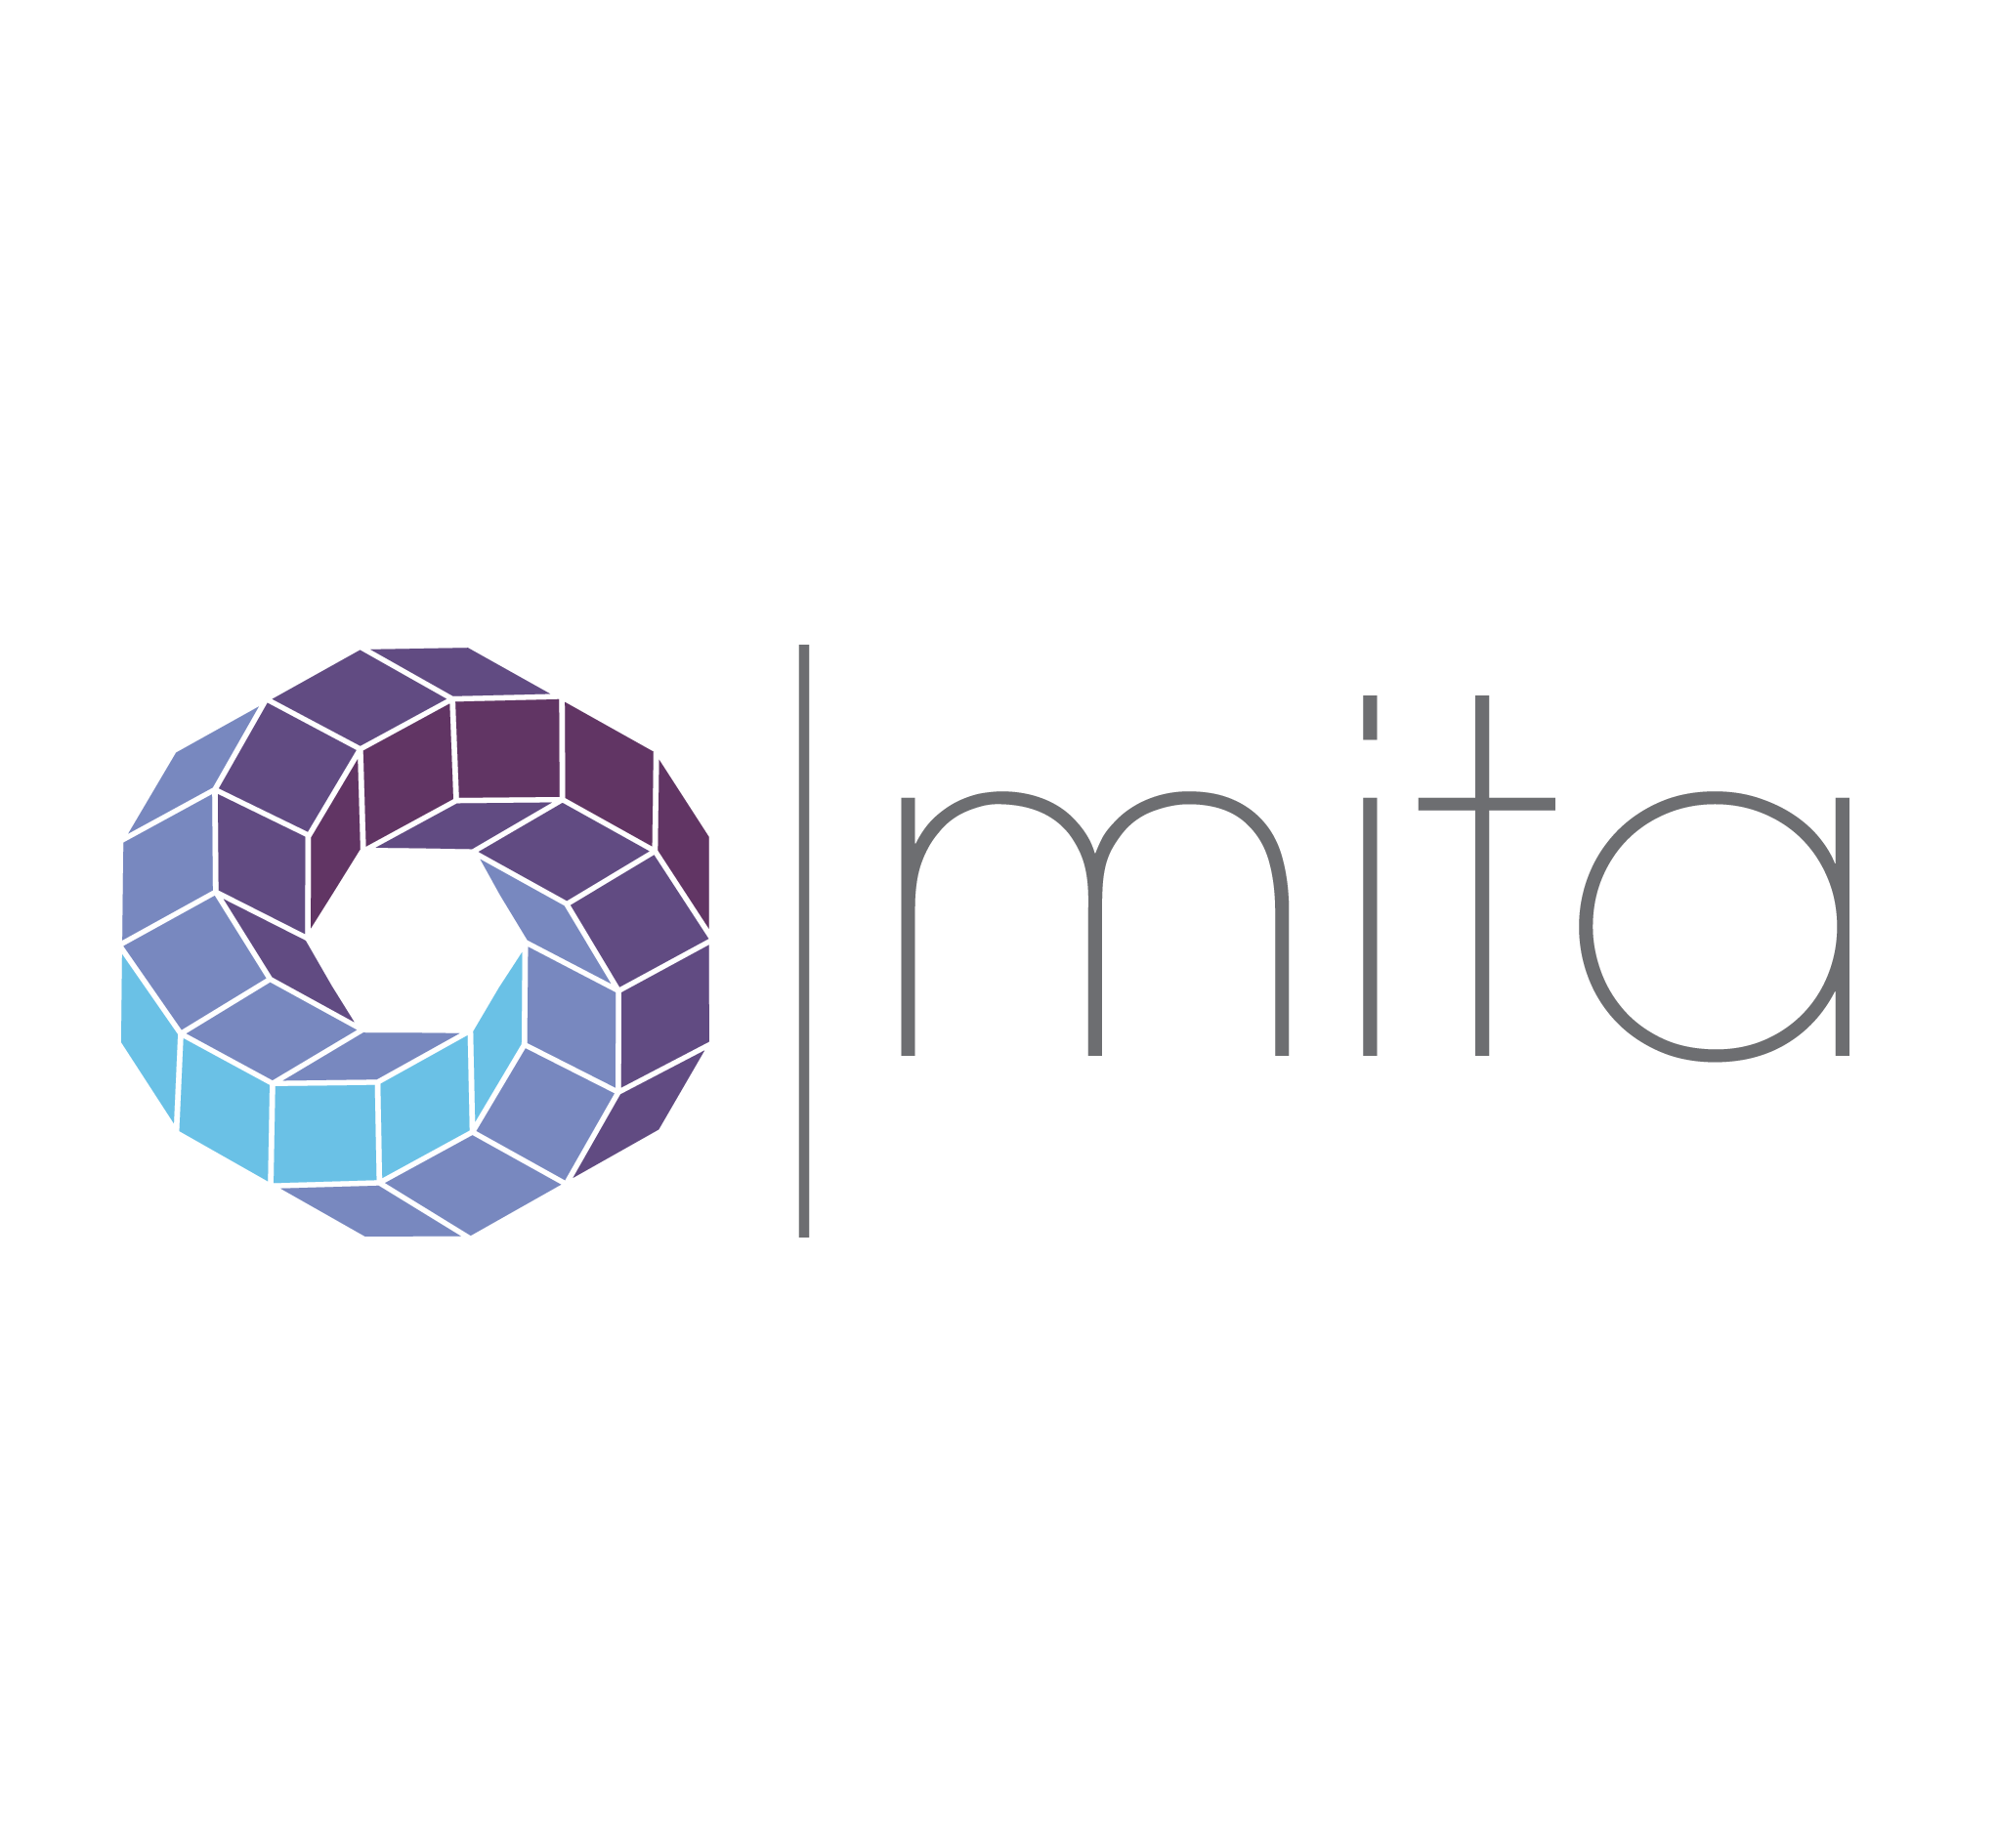 mita_logo softneta medical imaging solutions